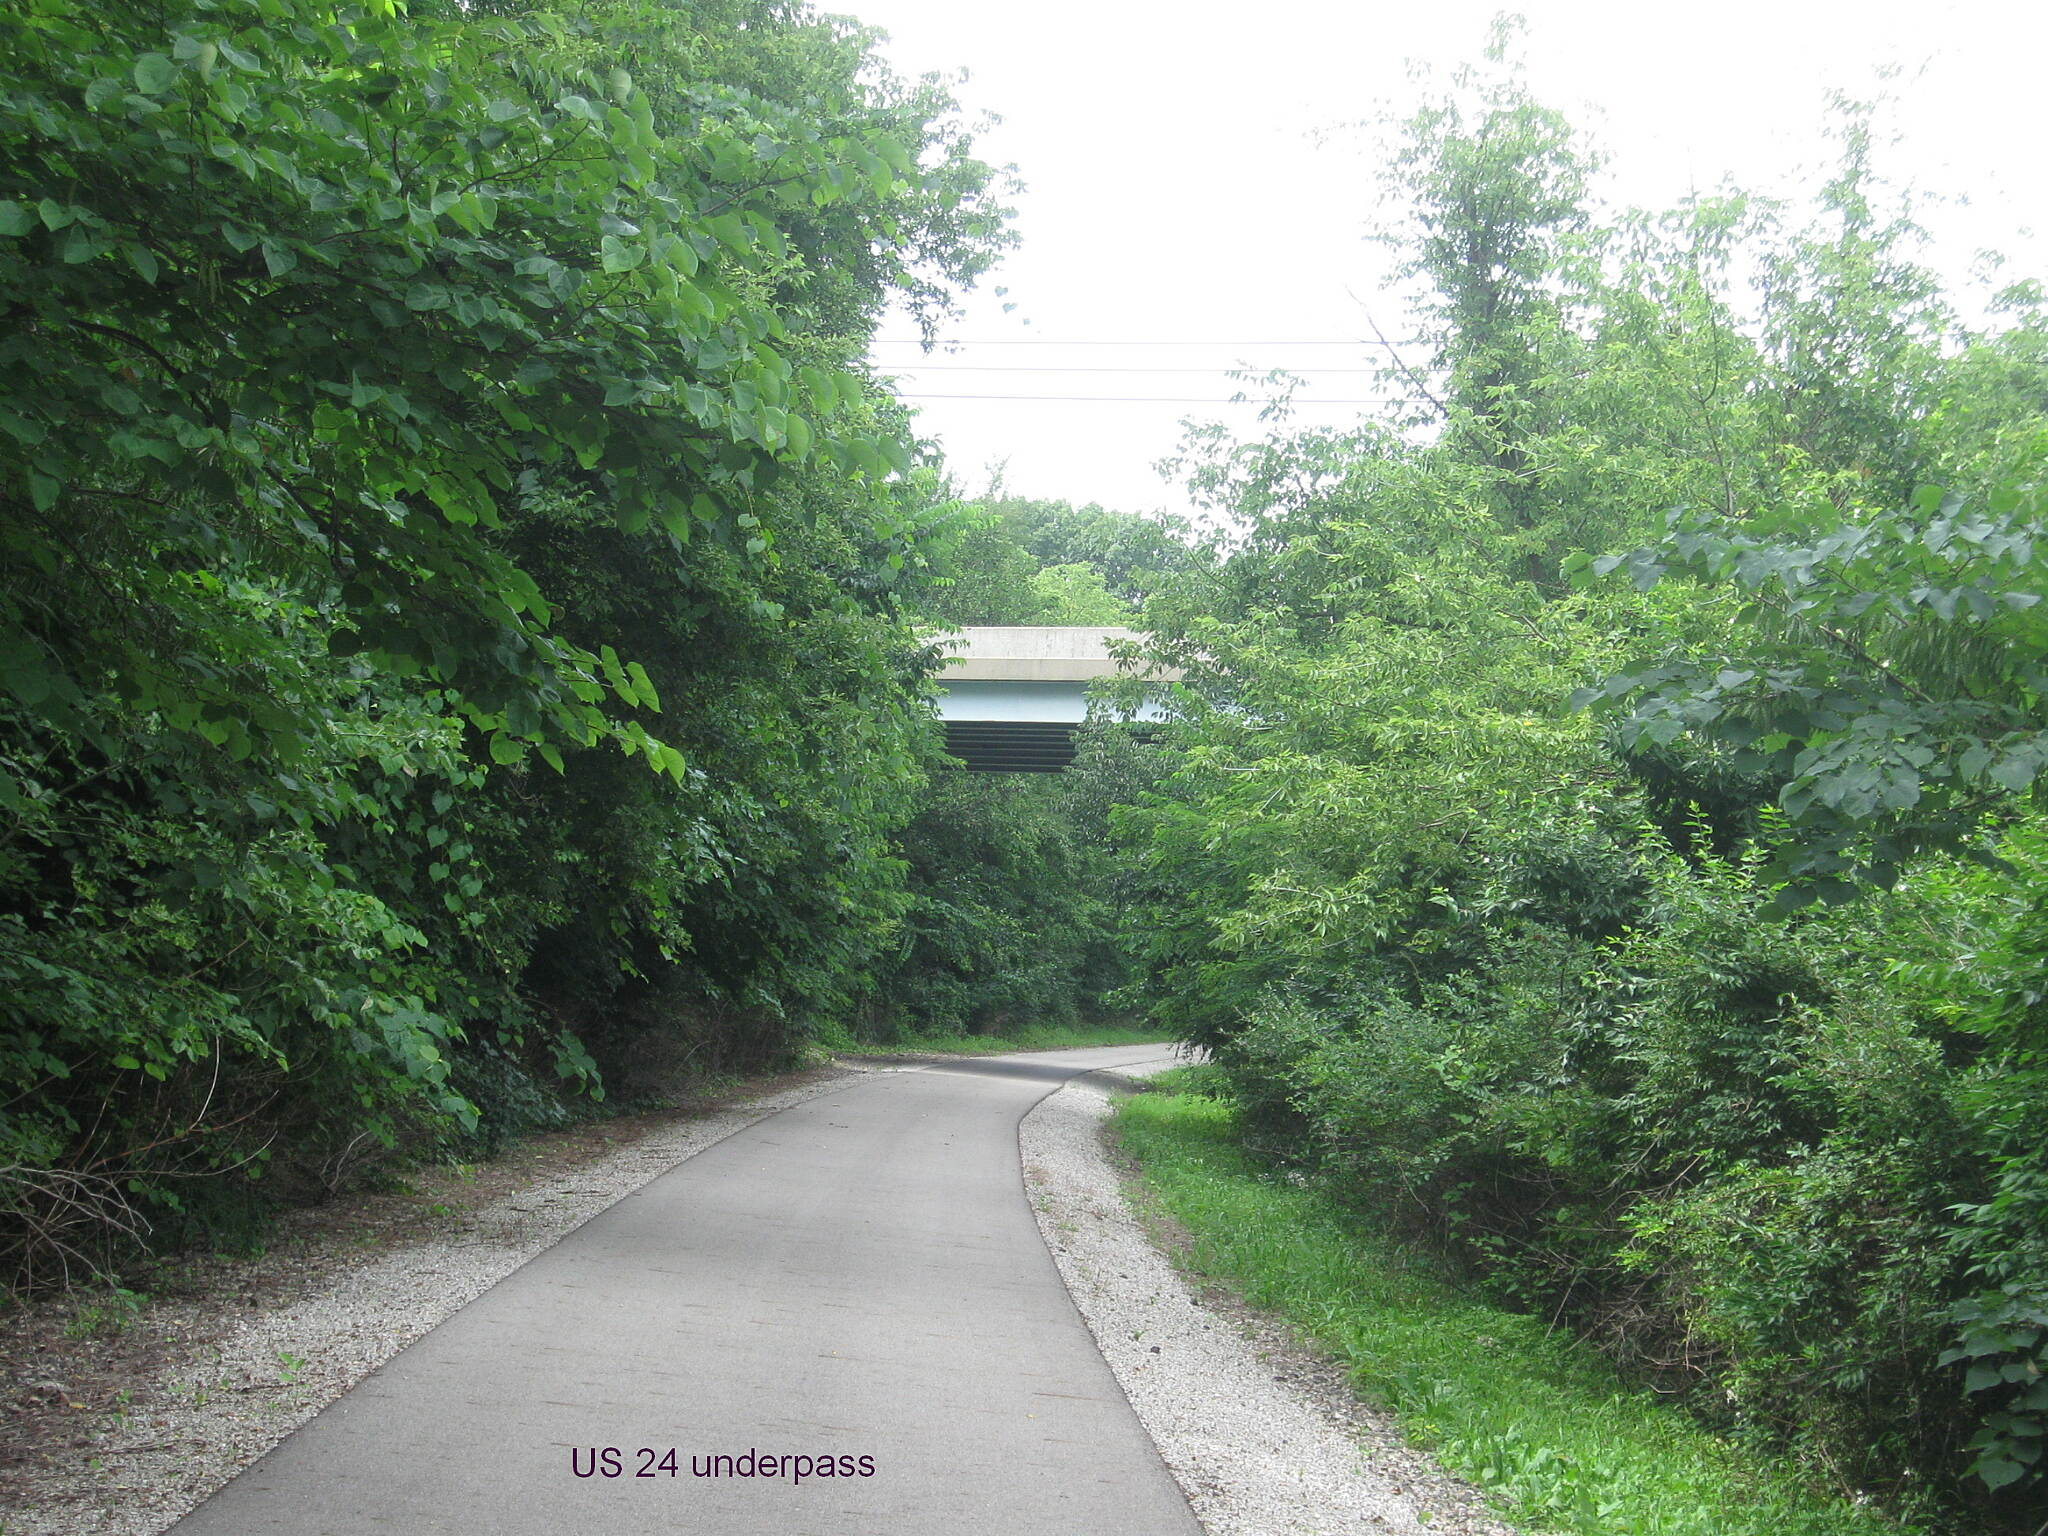 Panhandle Pathway US 24